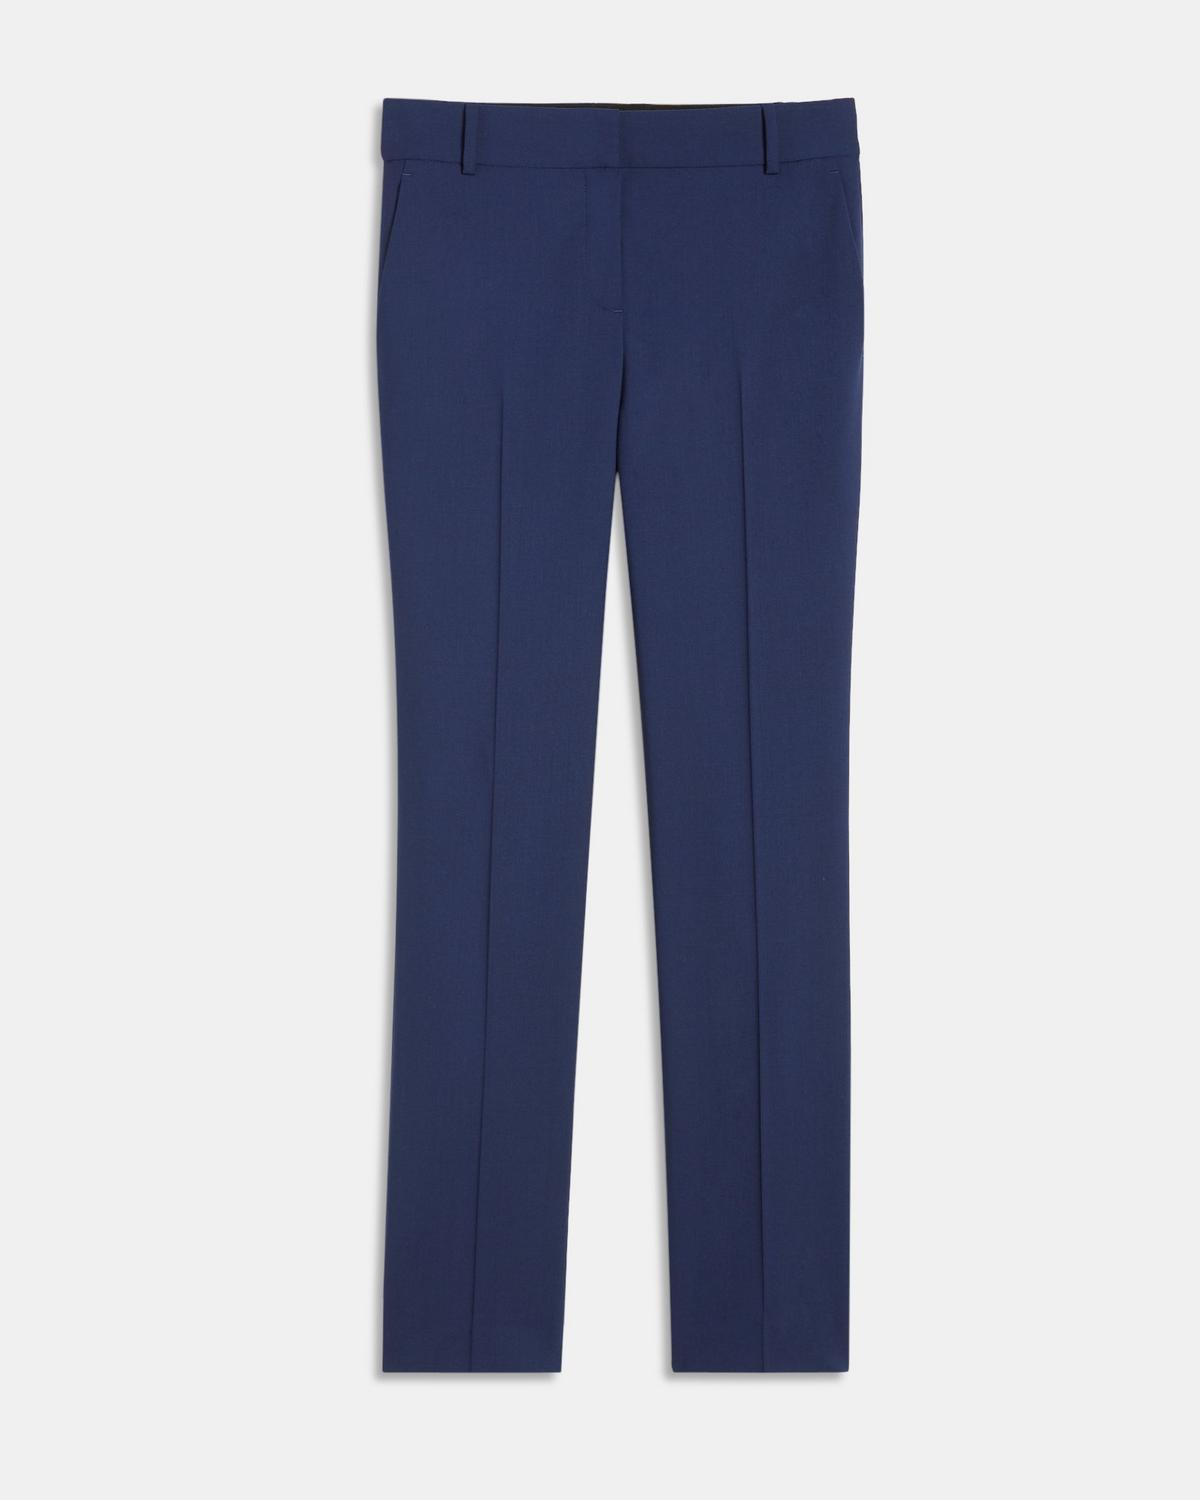 STRAIGHT TROUSER NS